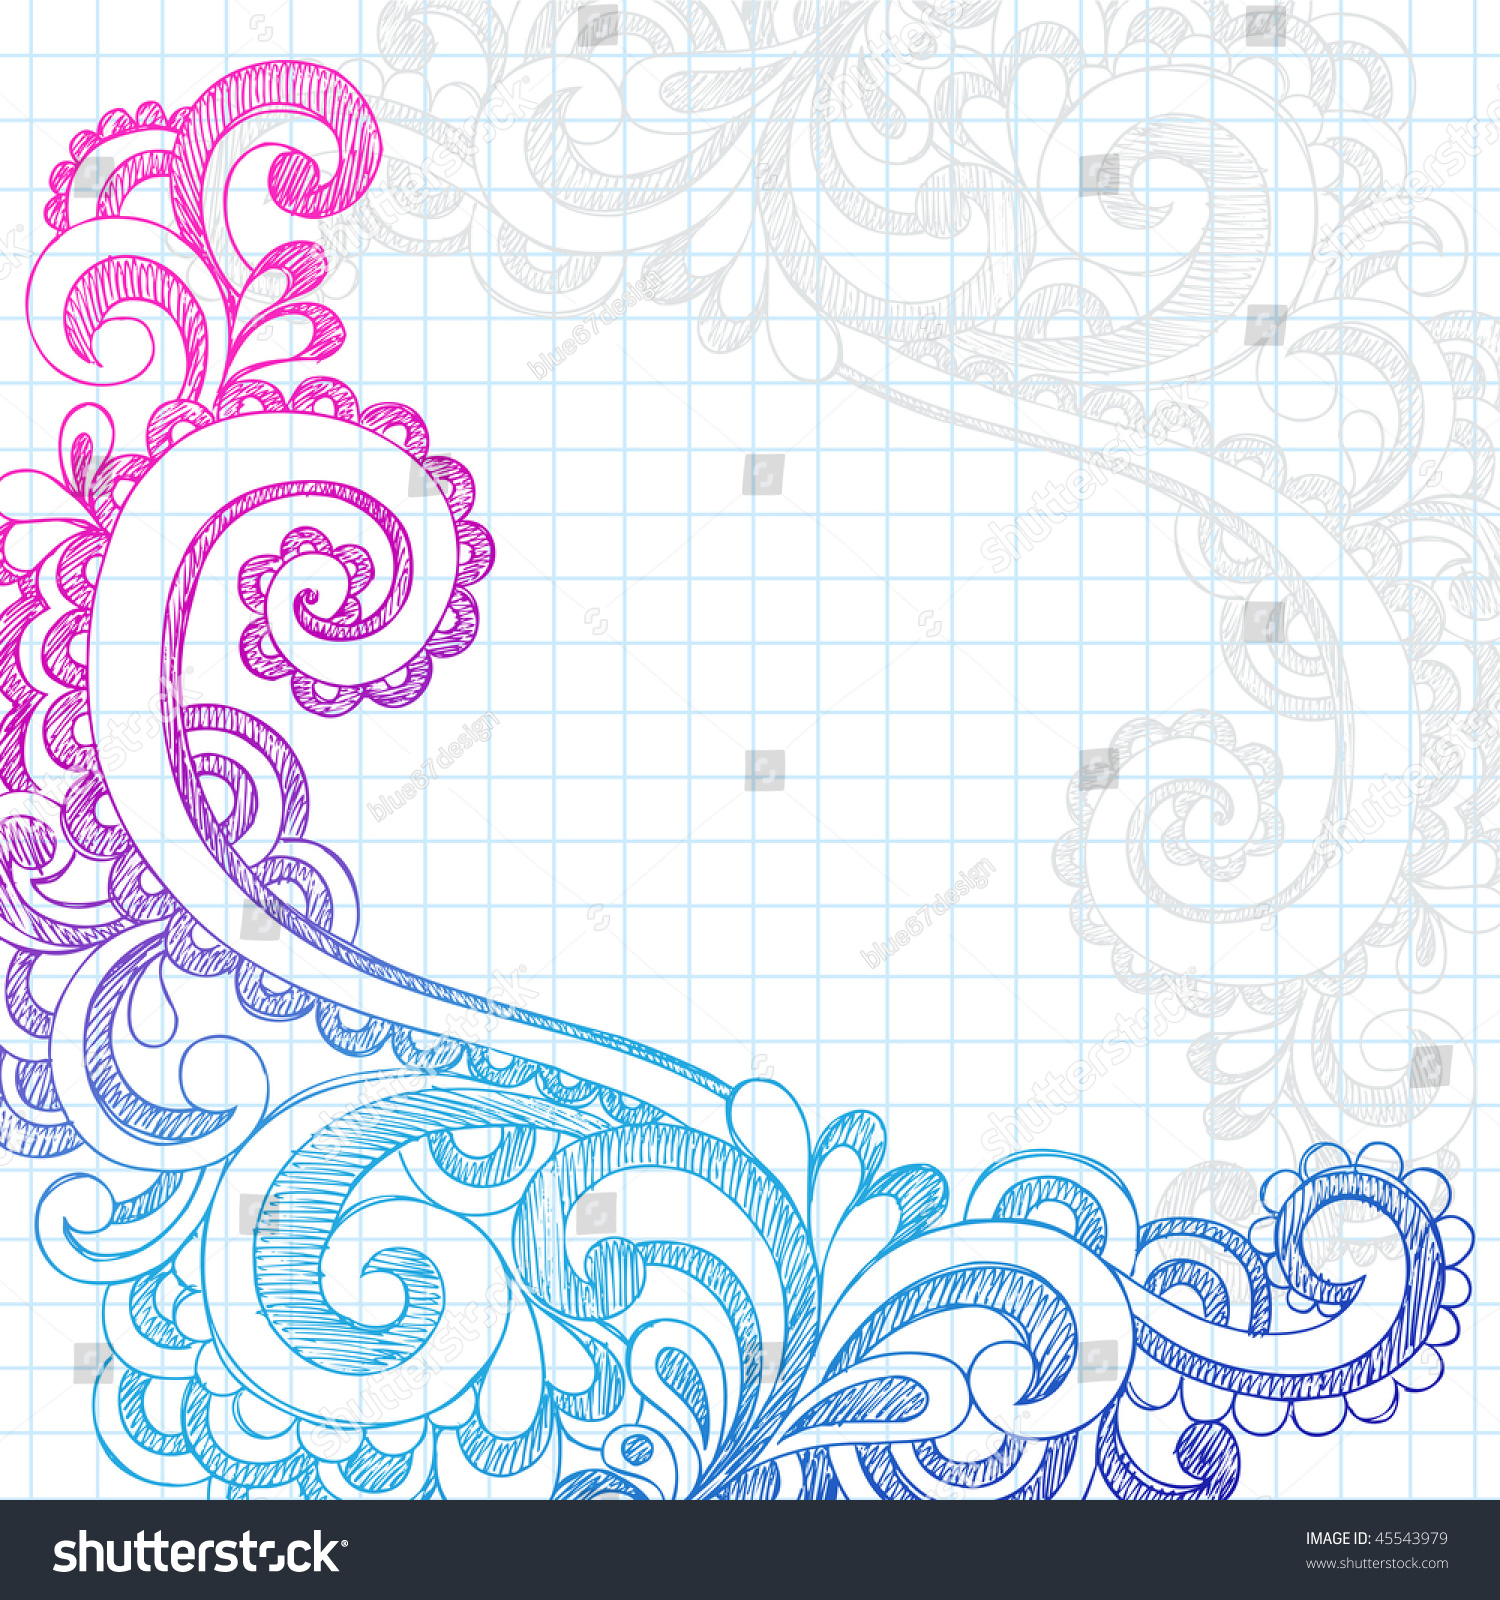 Simple flower border designs for school projects free download clip - Handdrawn Abstract Flower Paisley Sketchy Notebook Stock